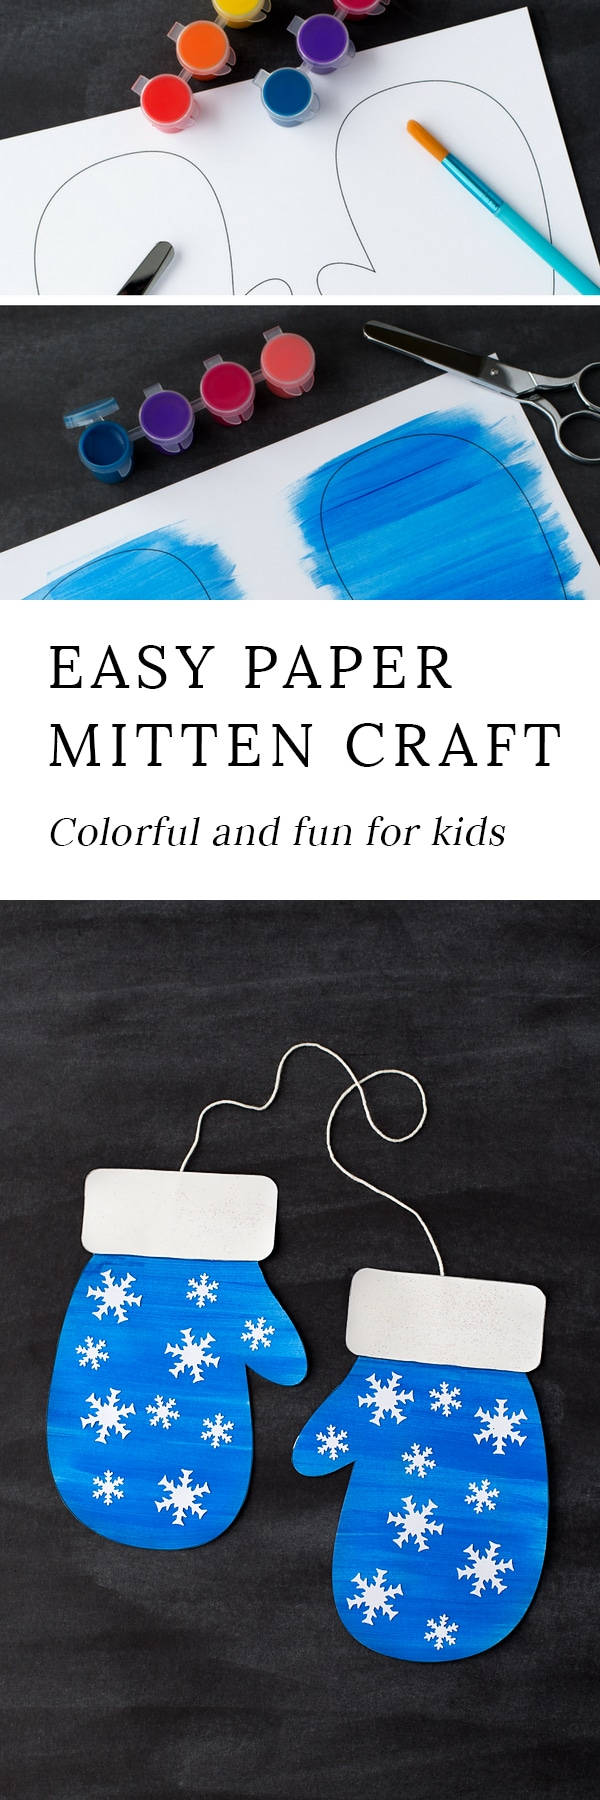 The Most Colorful and Fun Winter Mitten Craft for Kids